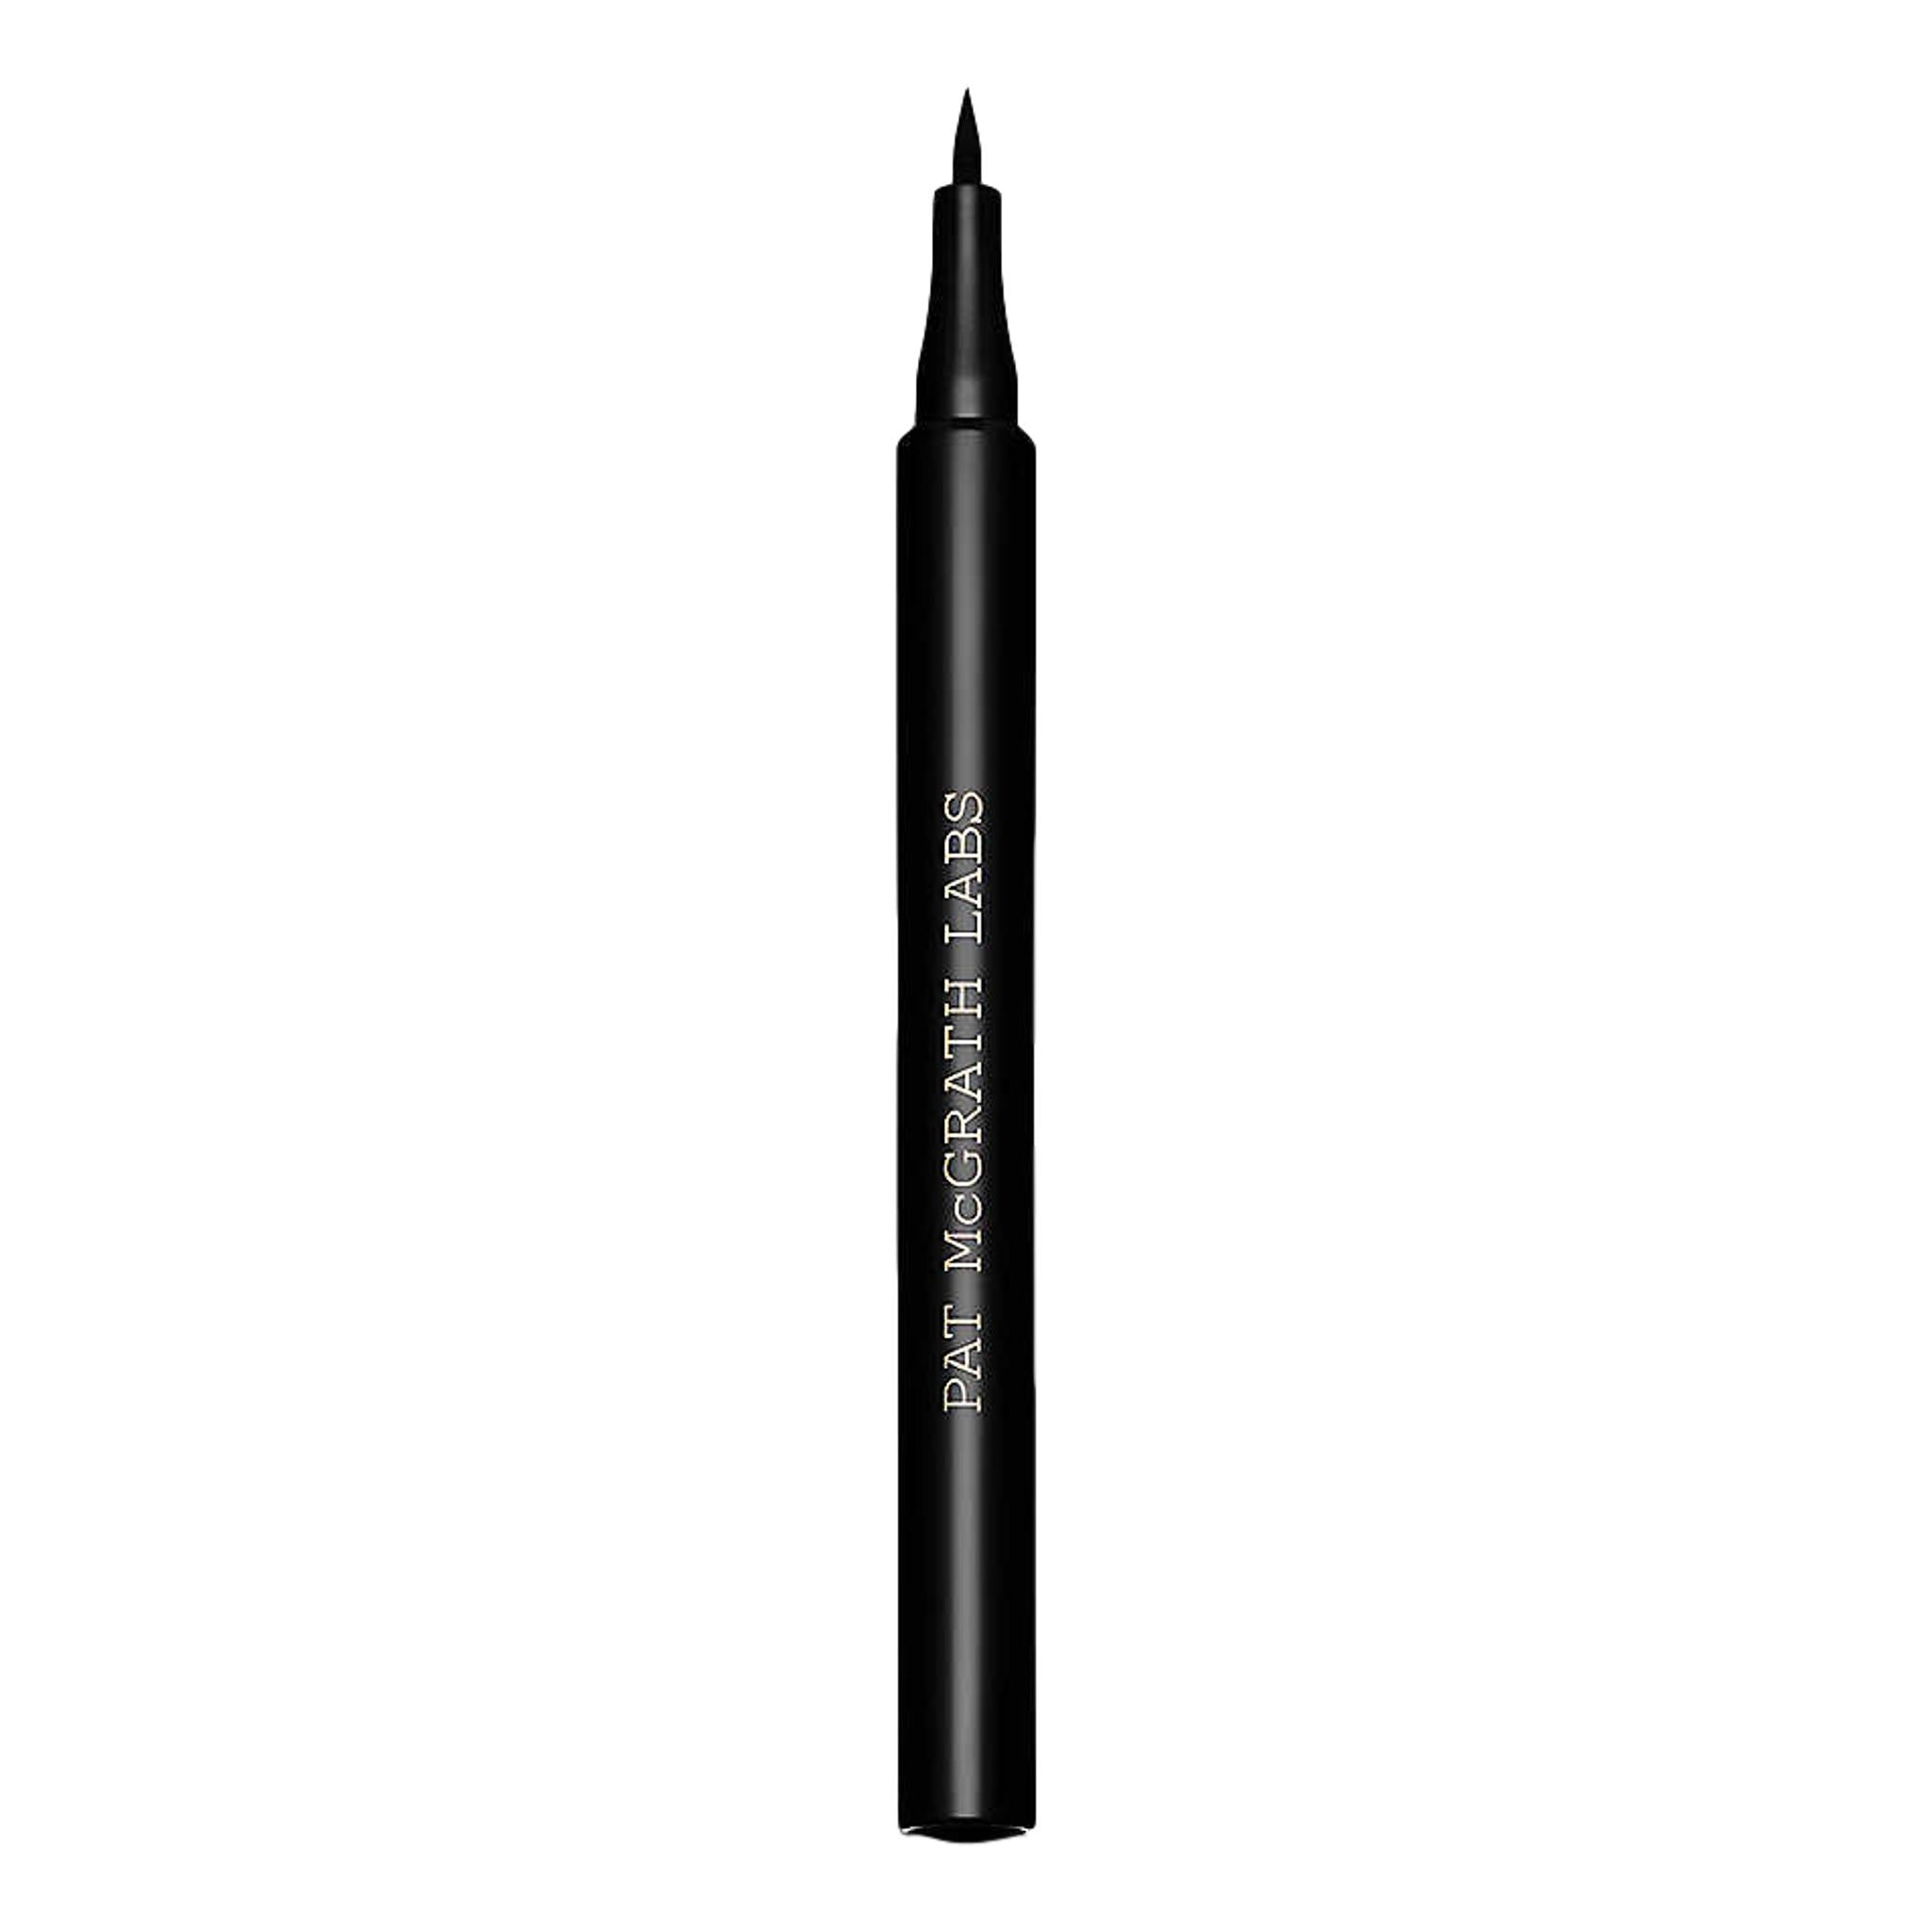 Pat McGrath Perma Precision Liquid Eyeliner, 1.2ml, eyeliner, London Loves Beauty